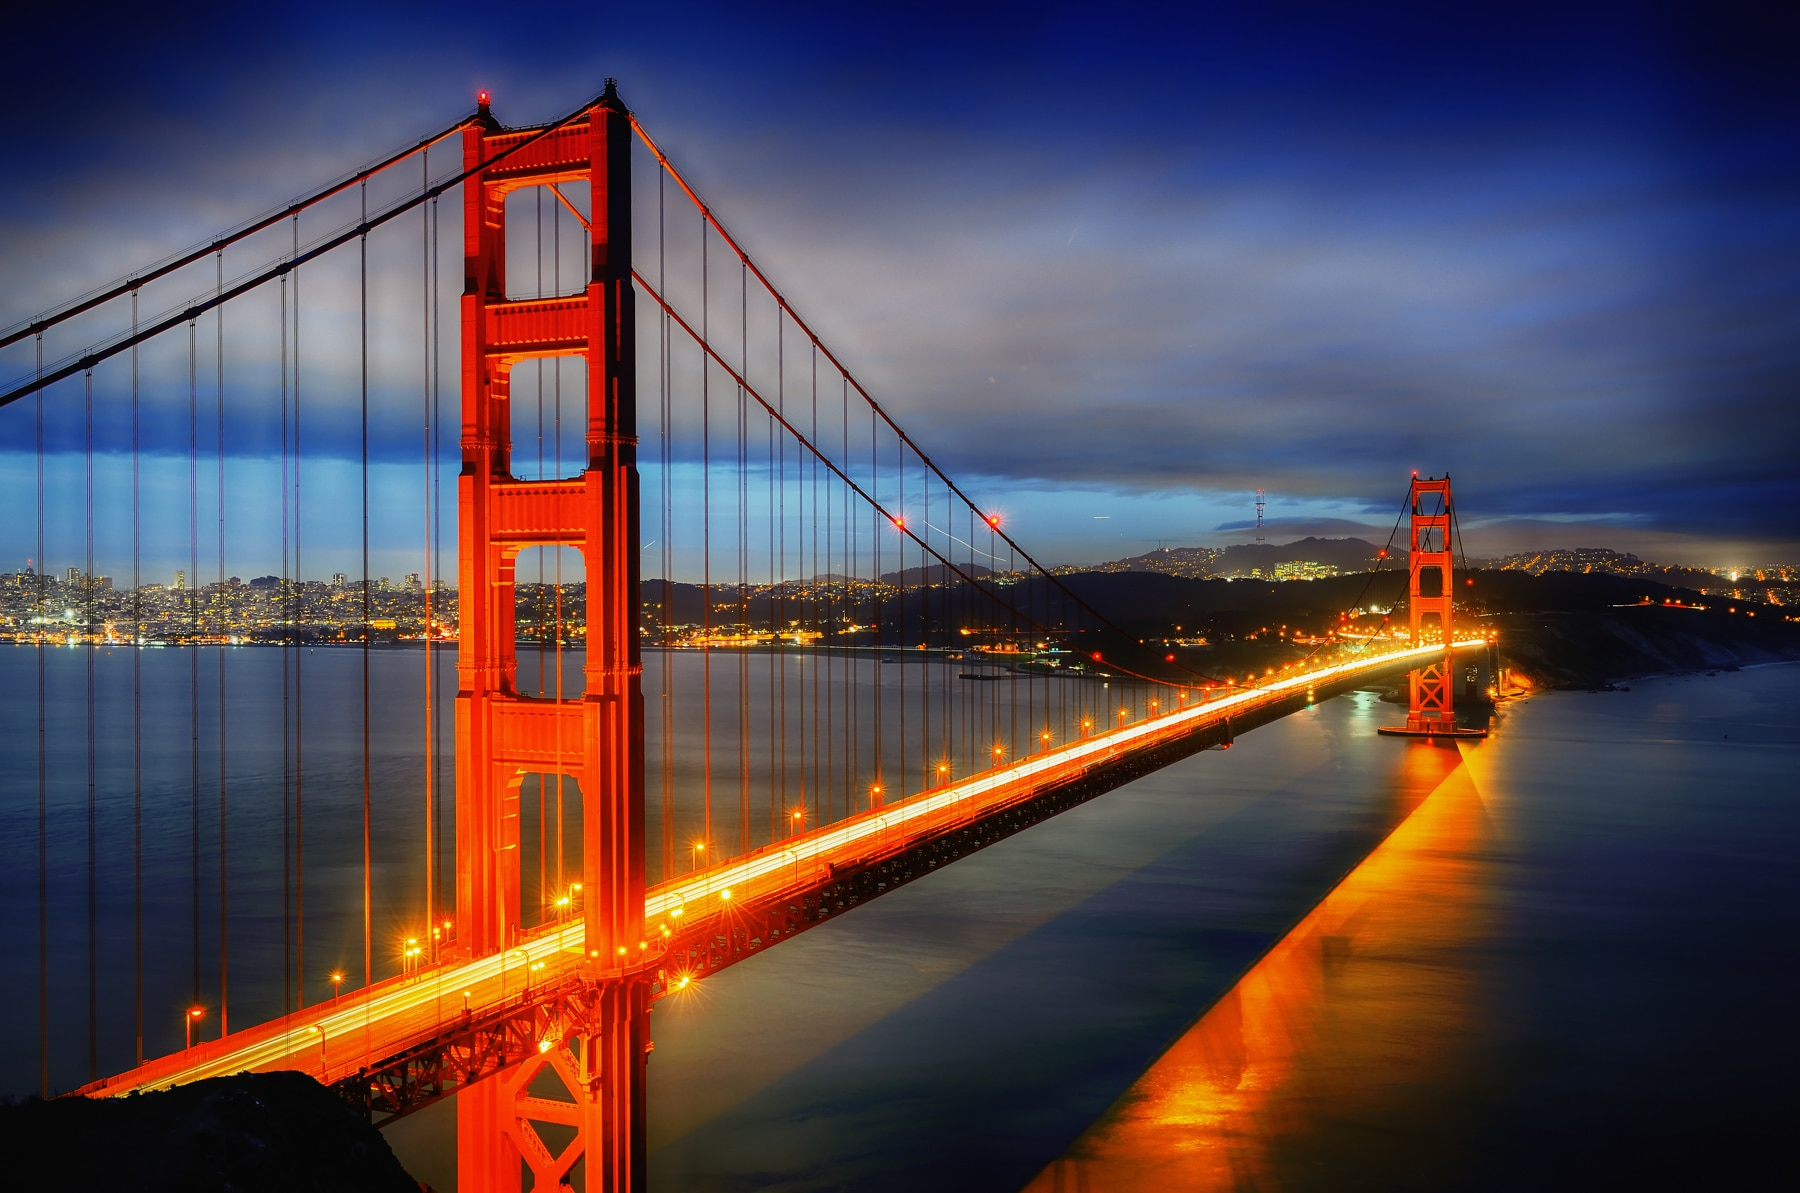 Red bridge illuminated at dusk (Shutterstock)